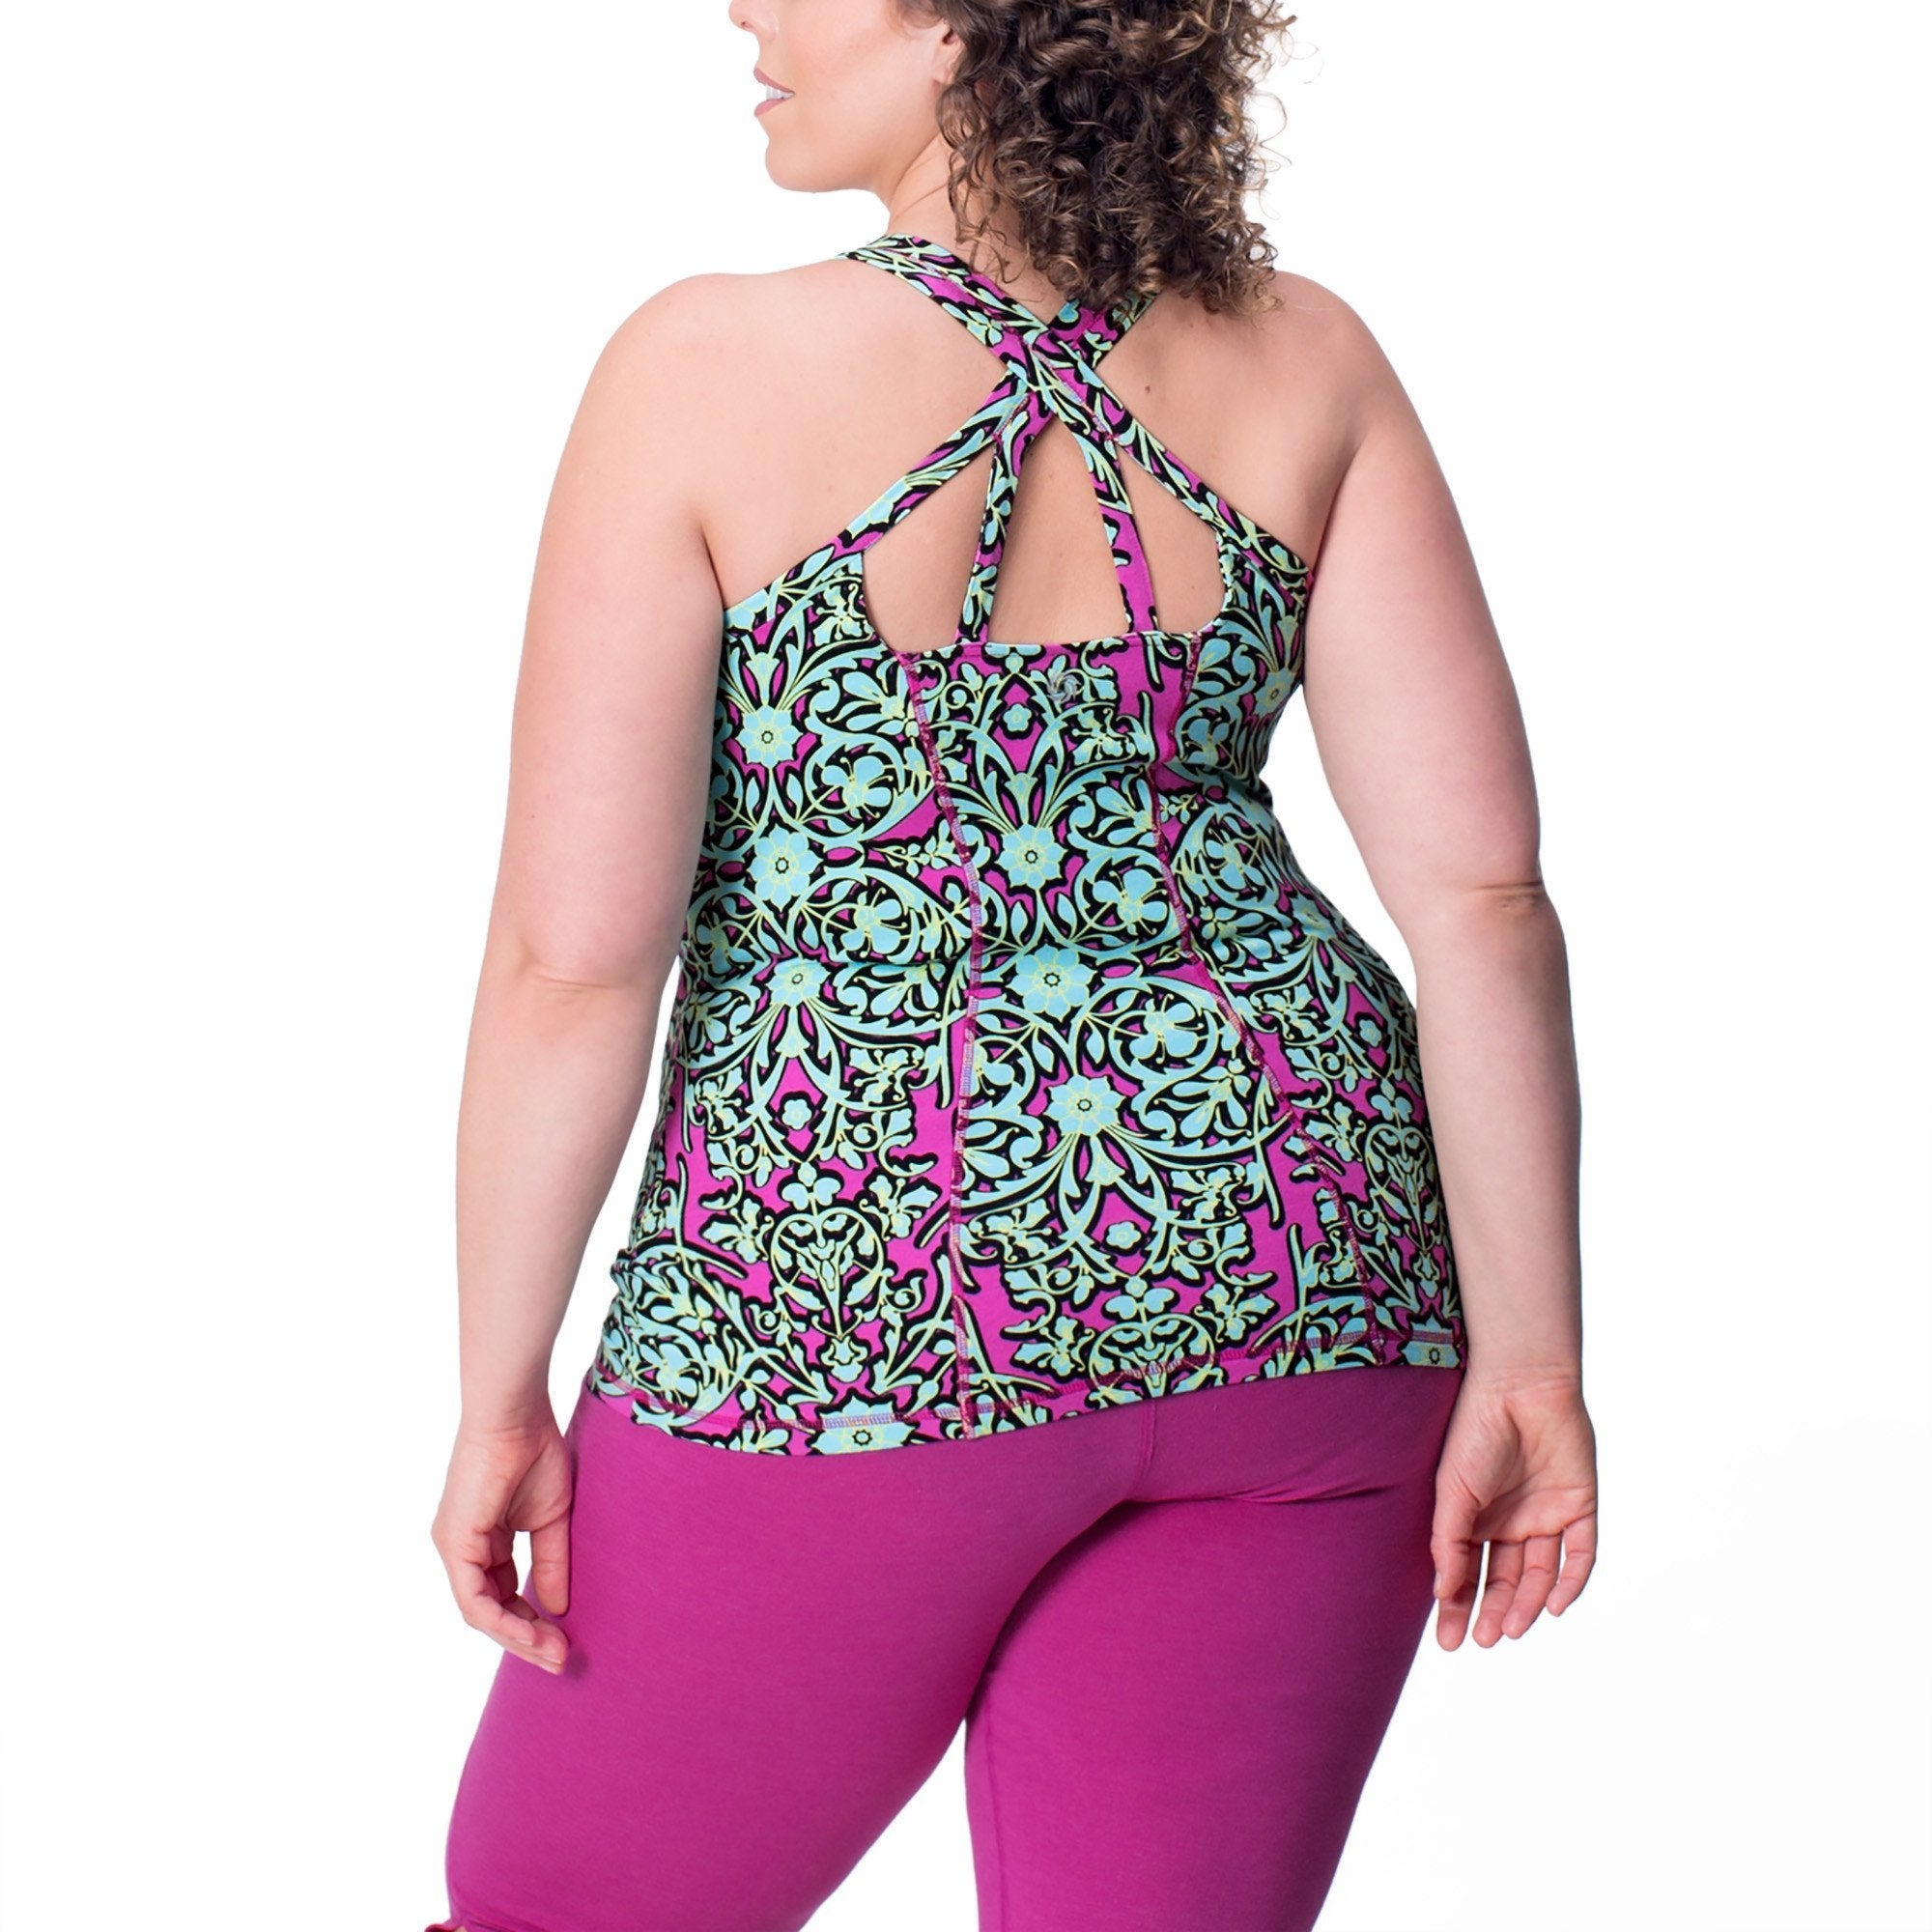 Ariel Print Tank - Rainbeau Curves, 14/16 / Multi Floral Trellis, activewear, athleisure, fitness, workout, gym, performance, womens, ladies, plus size, curvy, full figured, spandex, cotton, polyester - 2